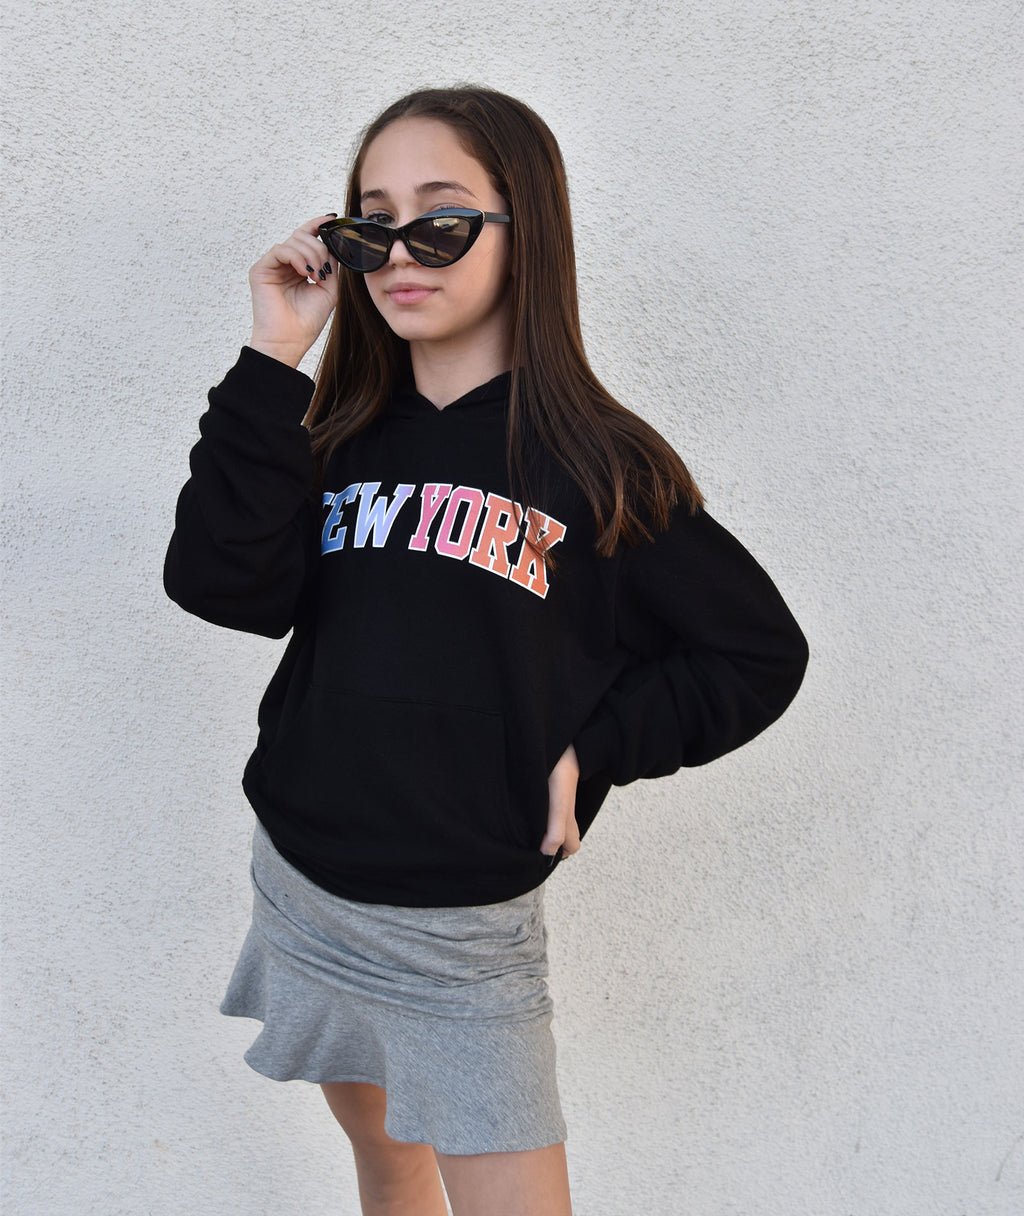 Me.n.u Girls New York Hoodie